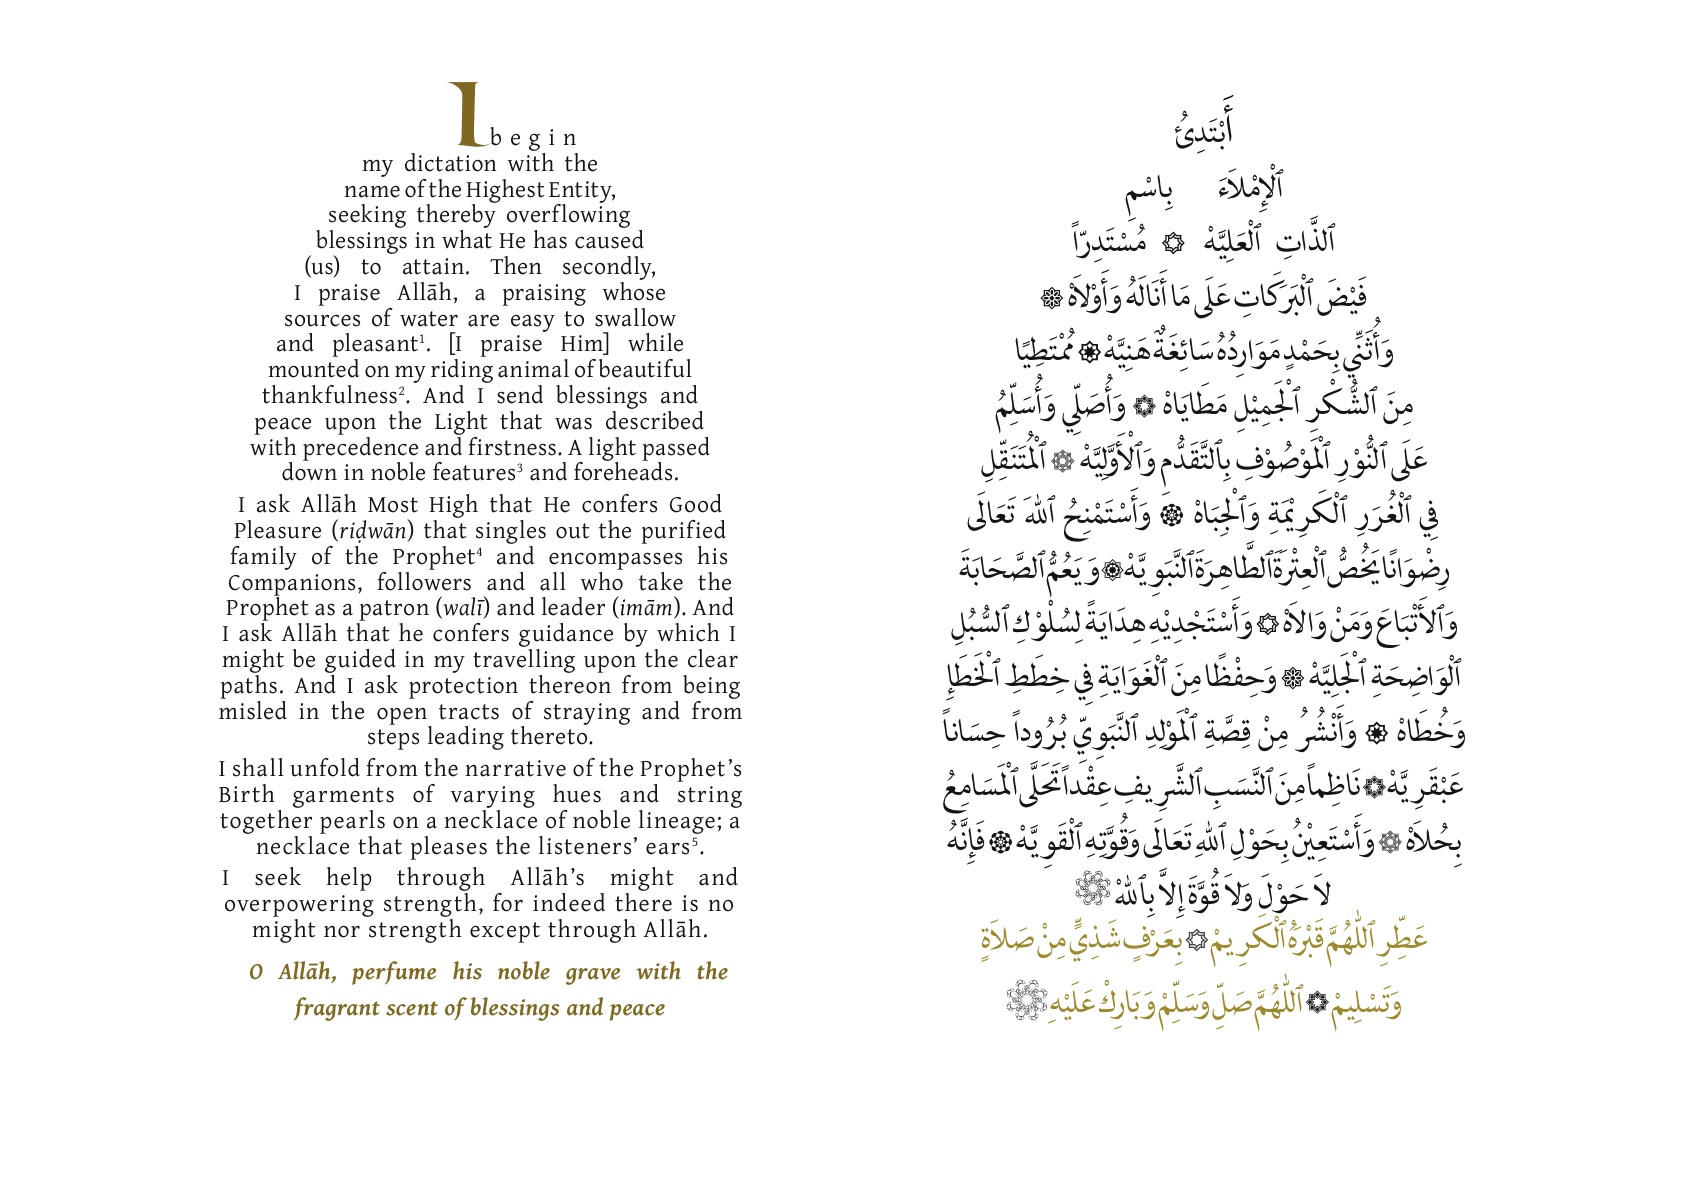 The Mawlid of al-Barzanji